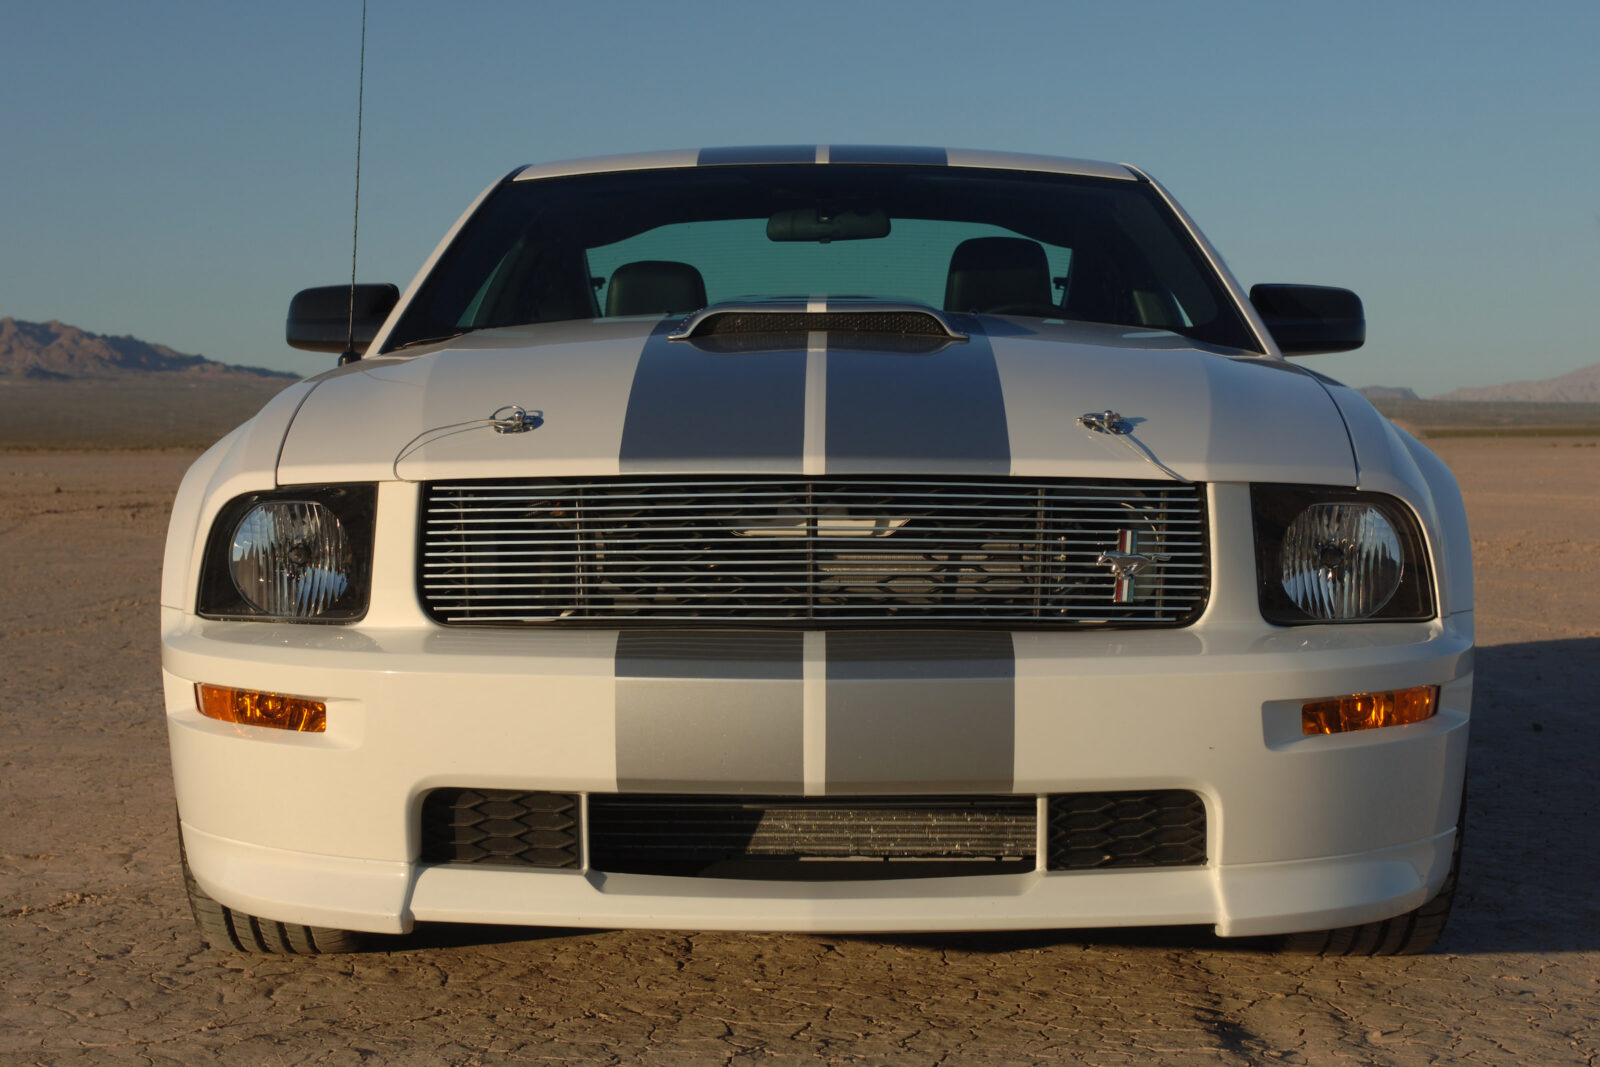 Shelby Mustang GT Concept 1 1600x1067 - 2007 Shelby Mustang GT Concept Car #1